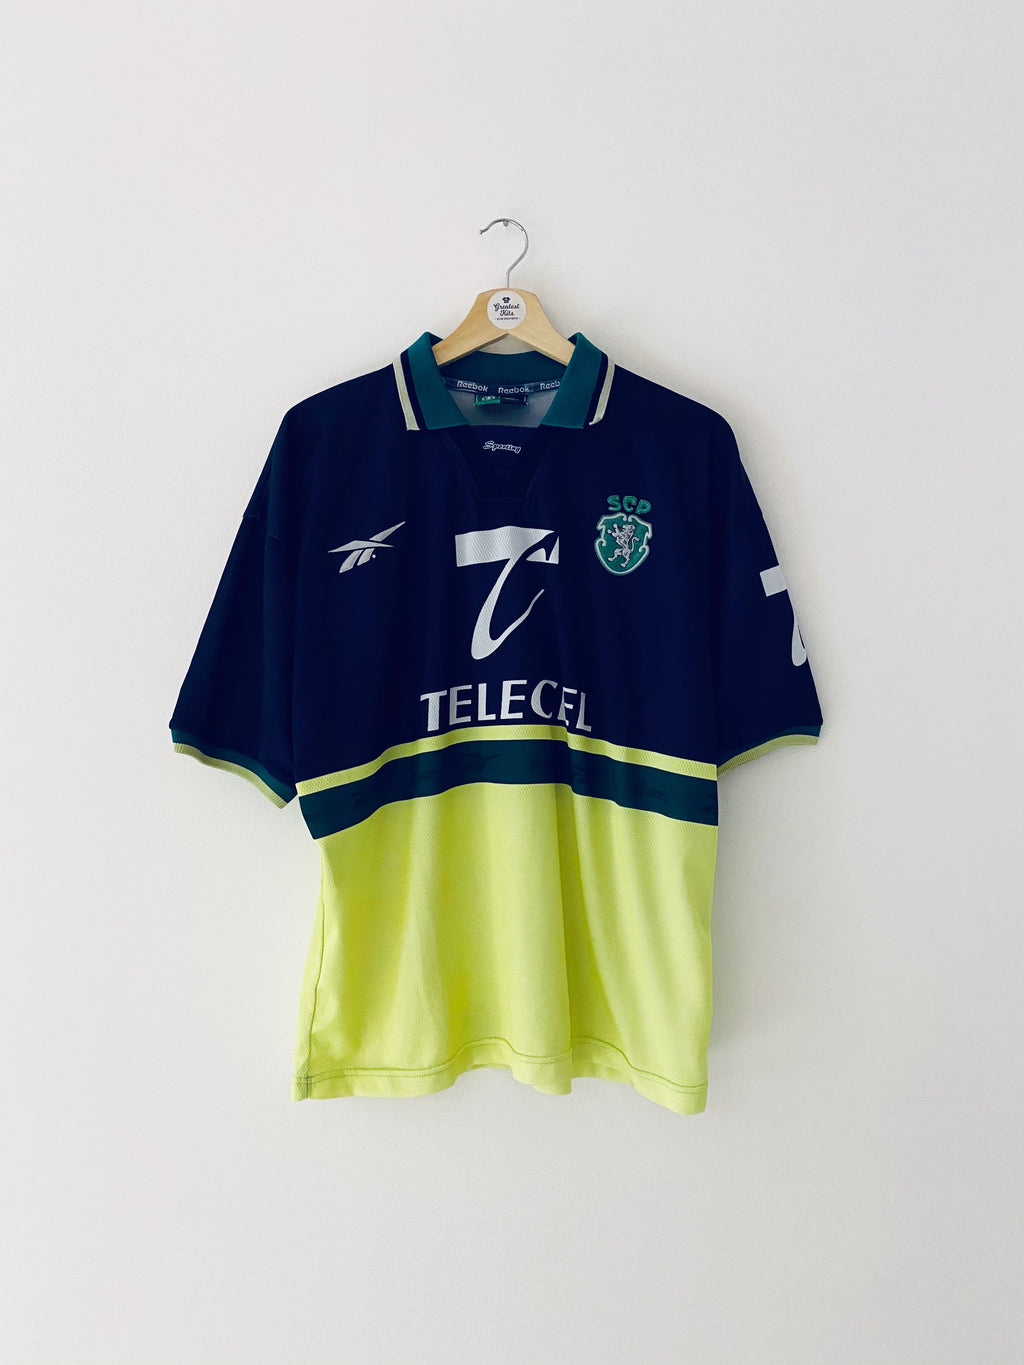 1998/99 Sporting Lisbon Away Shirt (M) 9/10